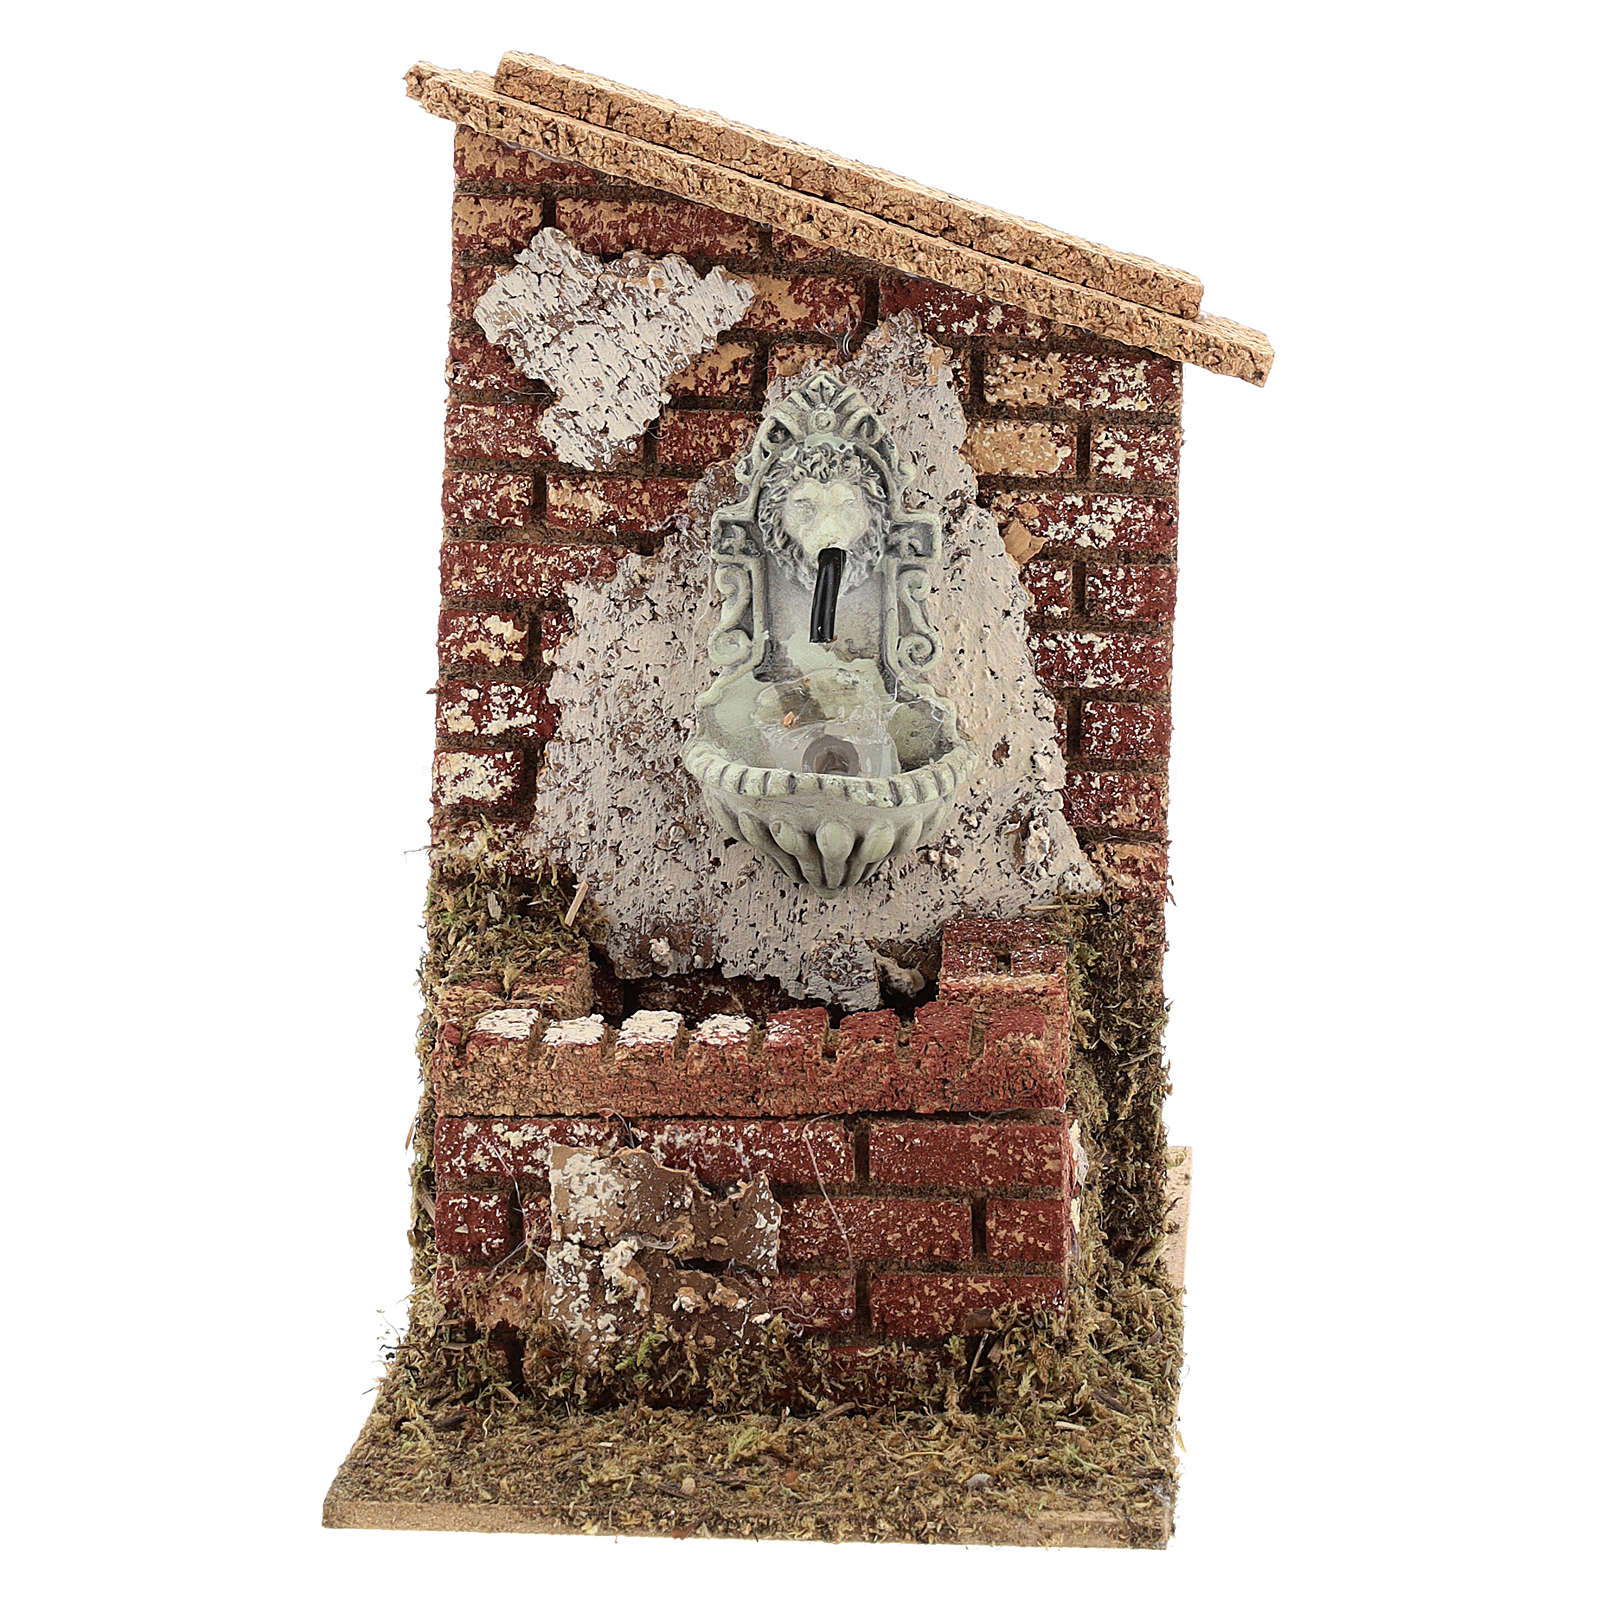 Nativity scene fountain with pump 15x10x15 cm for figurines 6-8 cm 4